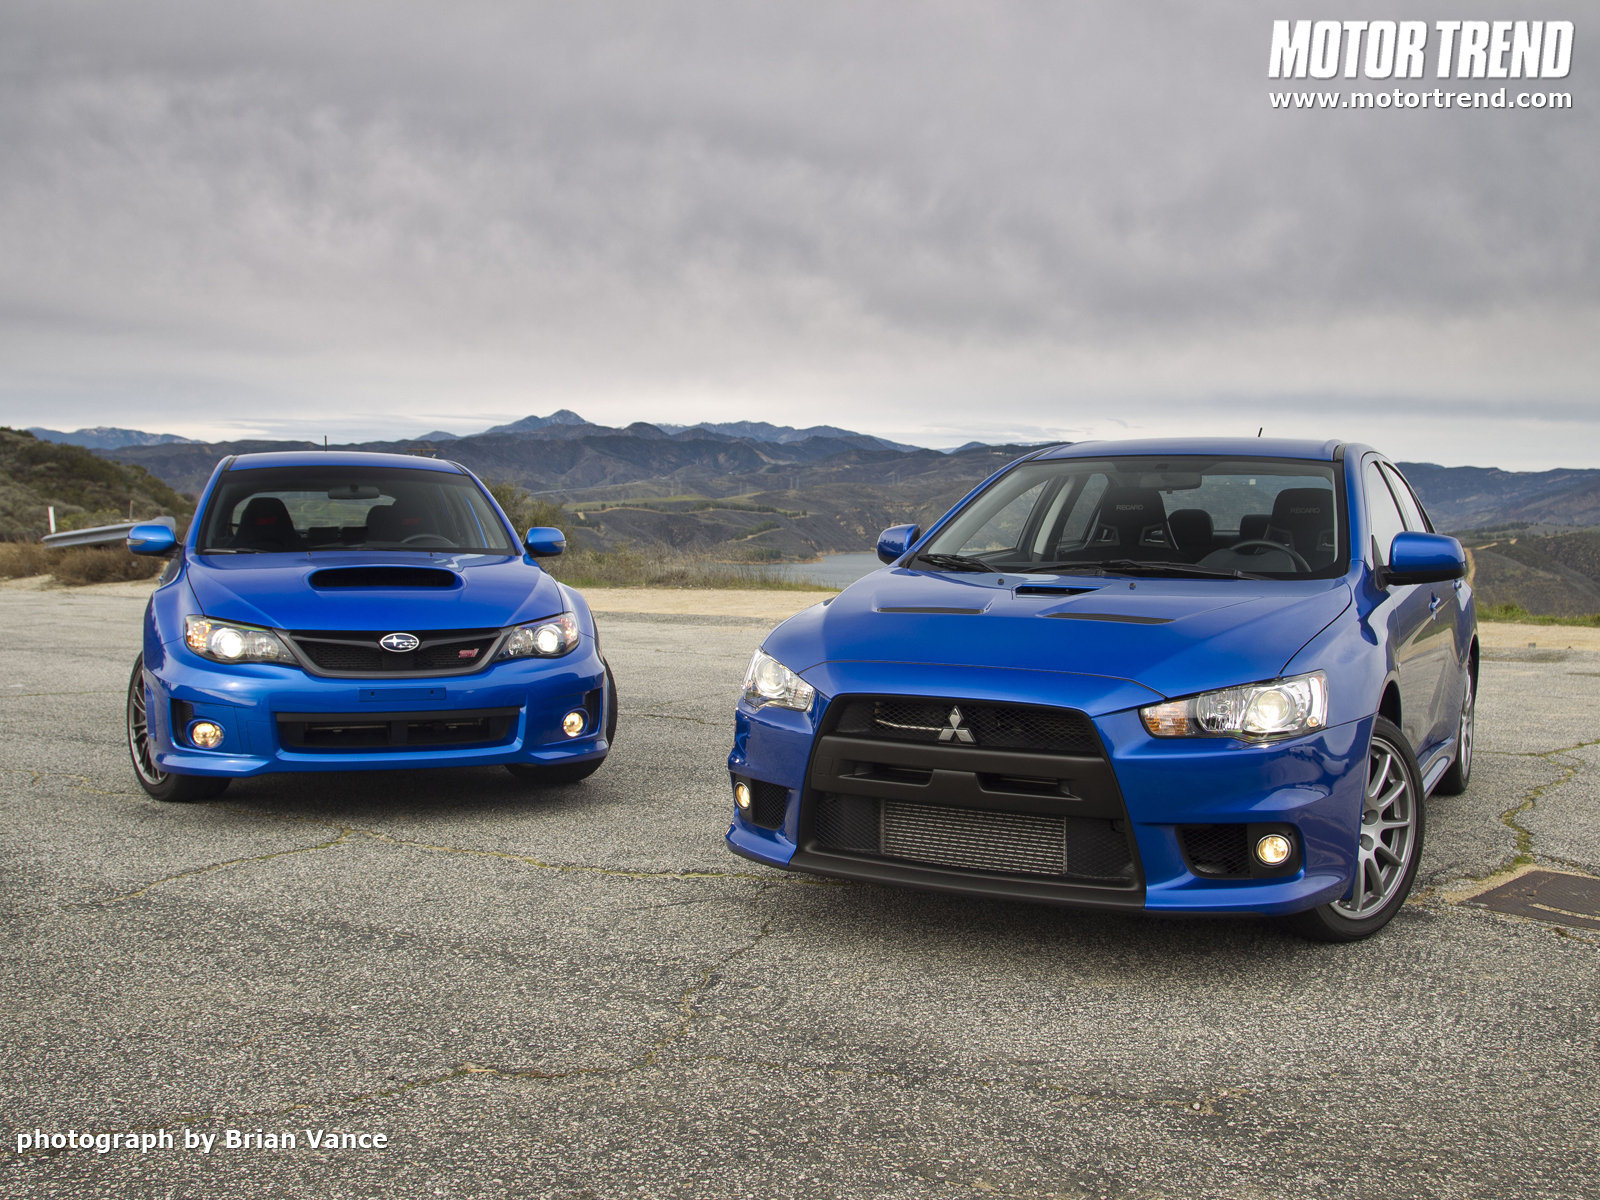 2011 Subaru Wrx Sti And 2010 Mitsubishi Lancer Evolution X Special